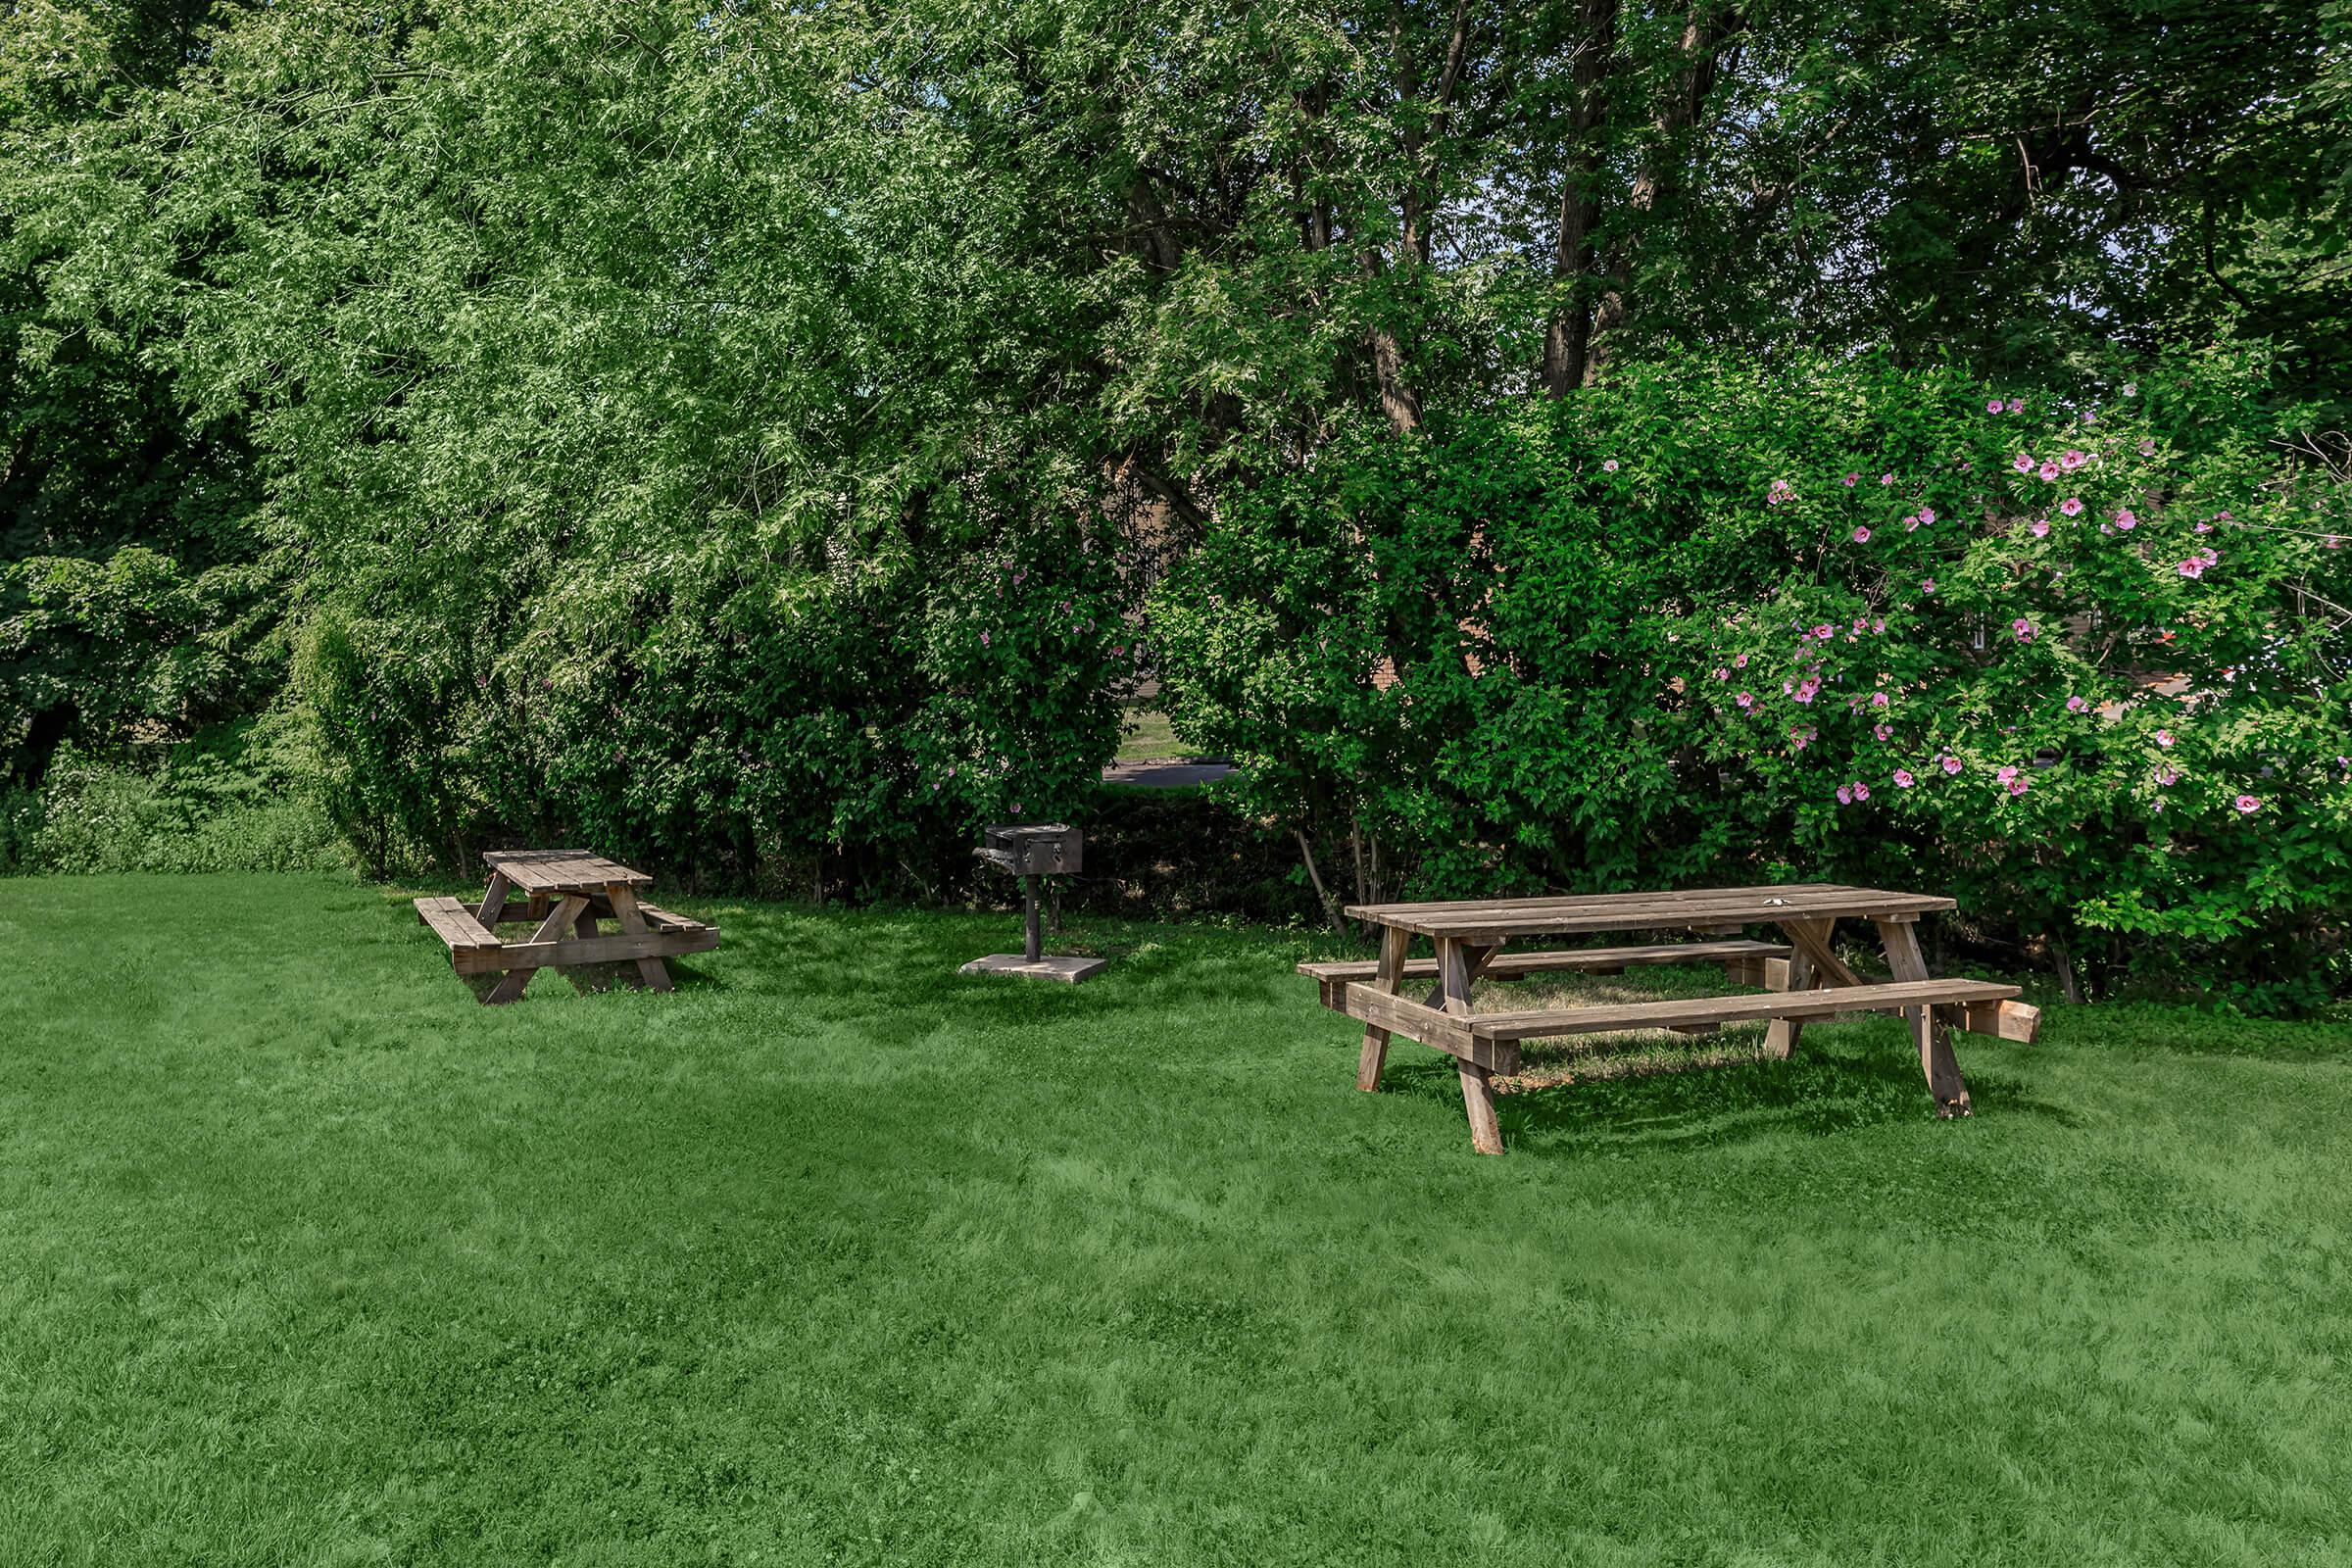 a green park bench sitting in the middle of a field